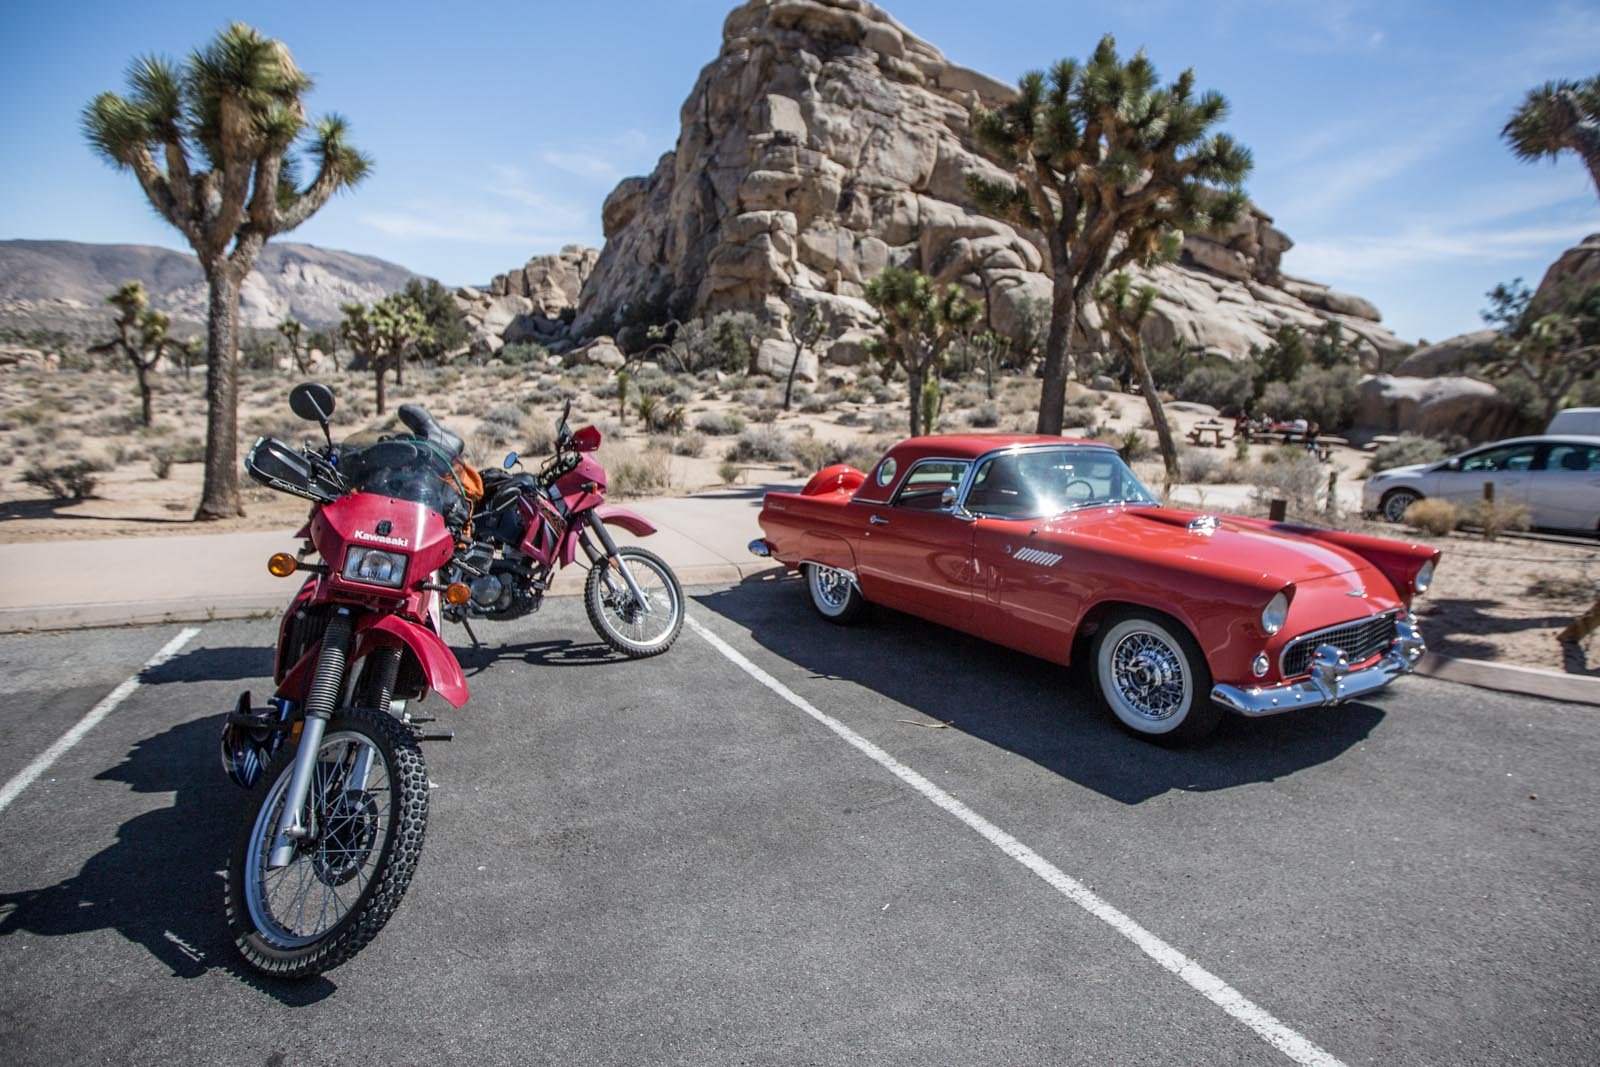 The thunderbird is kind of impressive, but our bikes obviously stole the show.